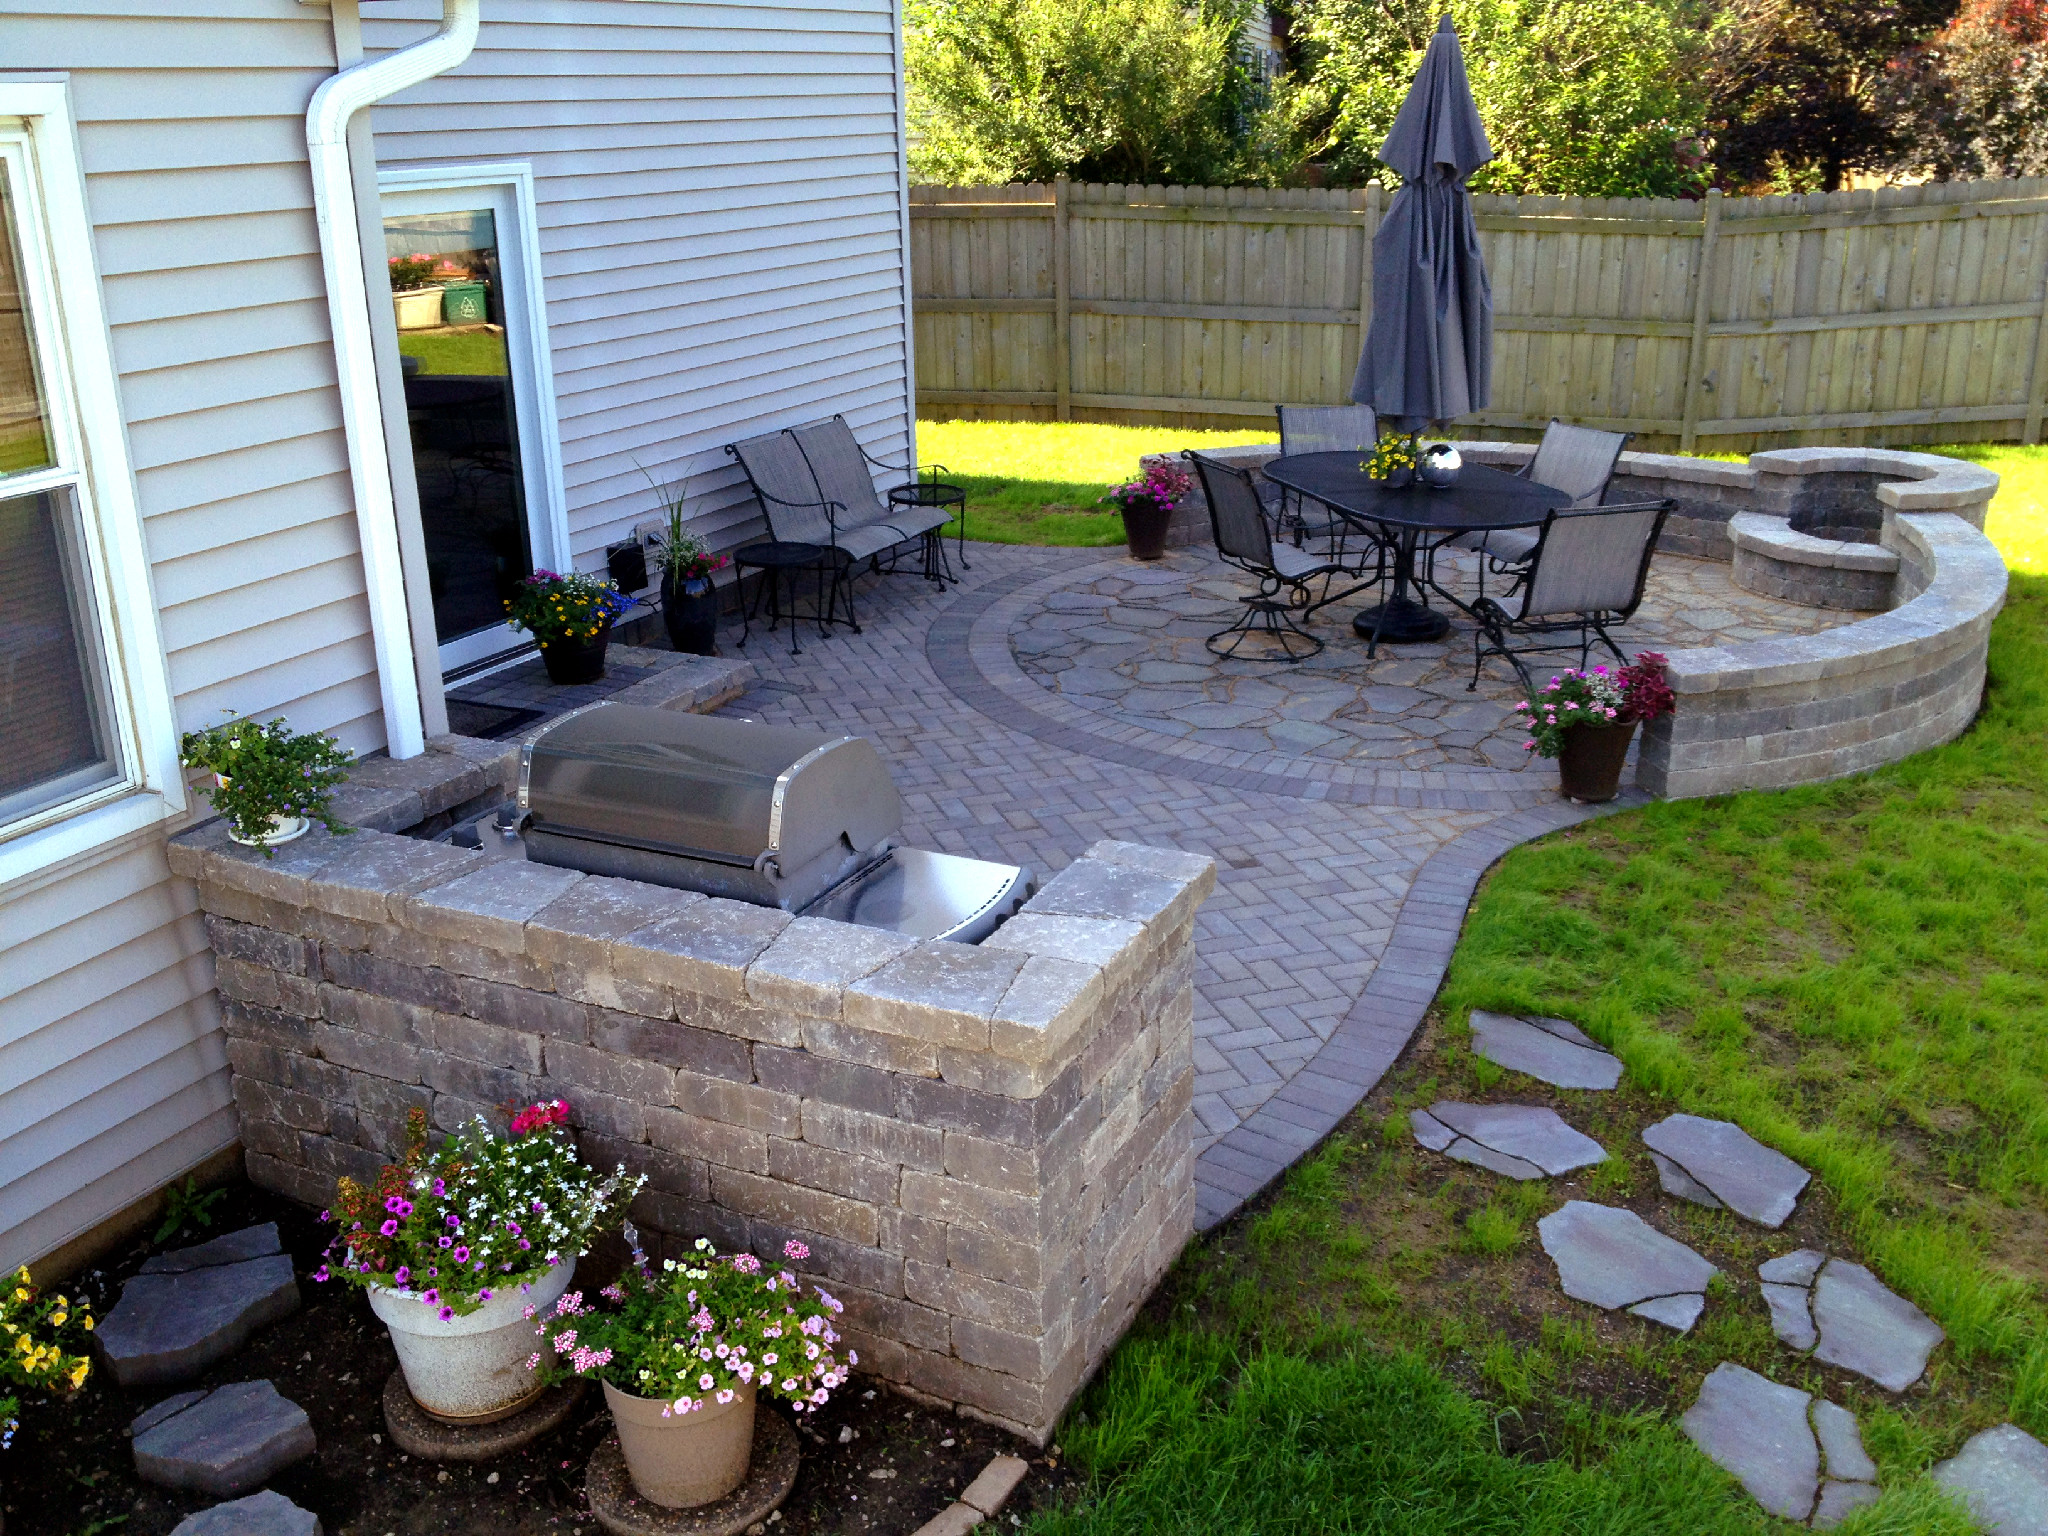 Is-a-new-patio-at-the-top-of-your-to-do-list-?